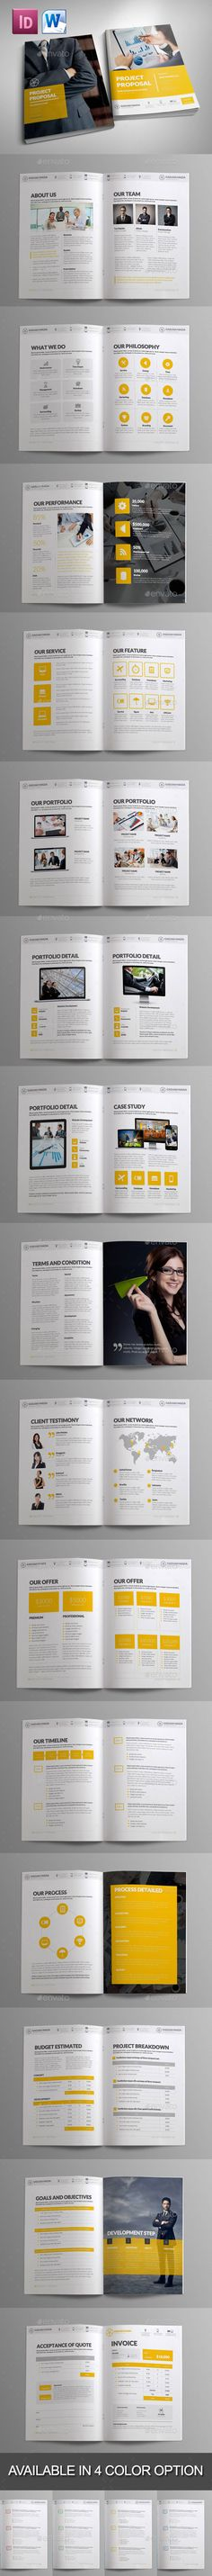 Project Proposal Template - V1 - Updated Project proposal - download business proposal template